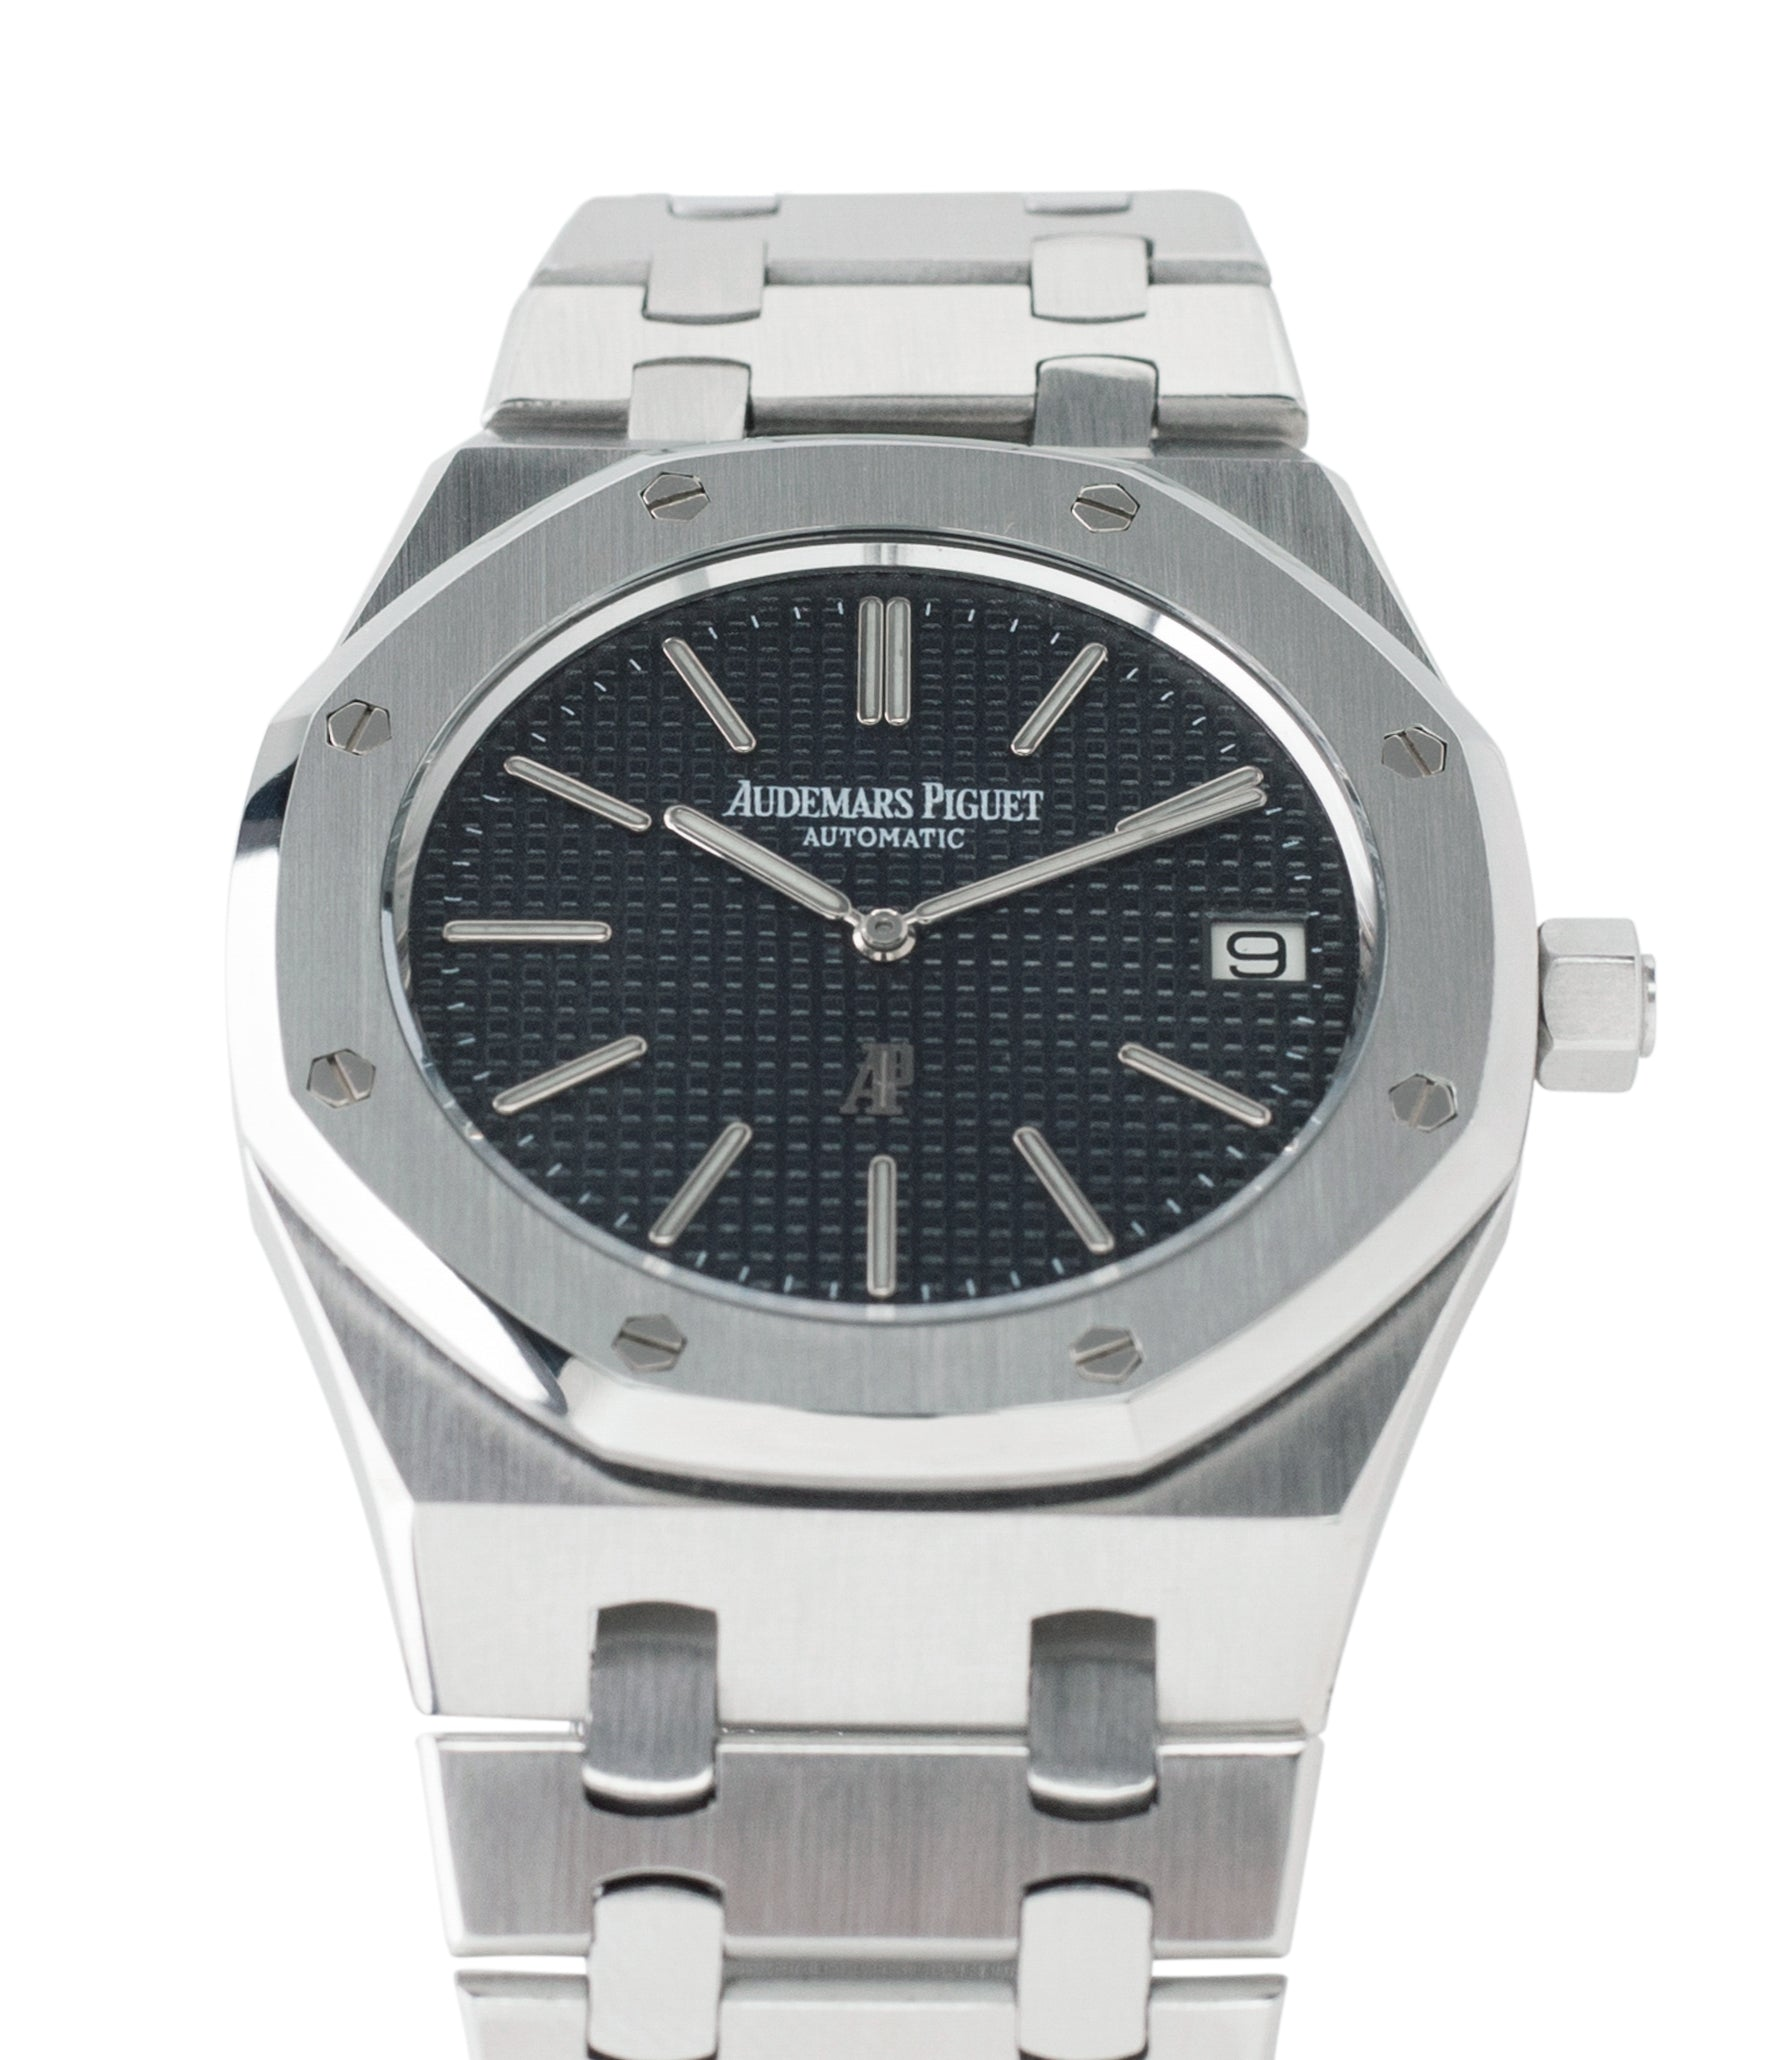 5402 Audemars Piguet Royal Oak A series steel rare sport watch online at A Collected Man London UK vintage watch specialist